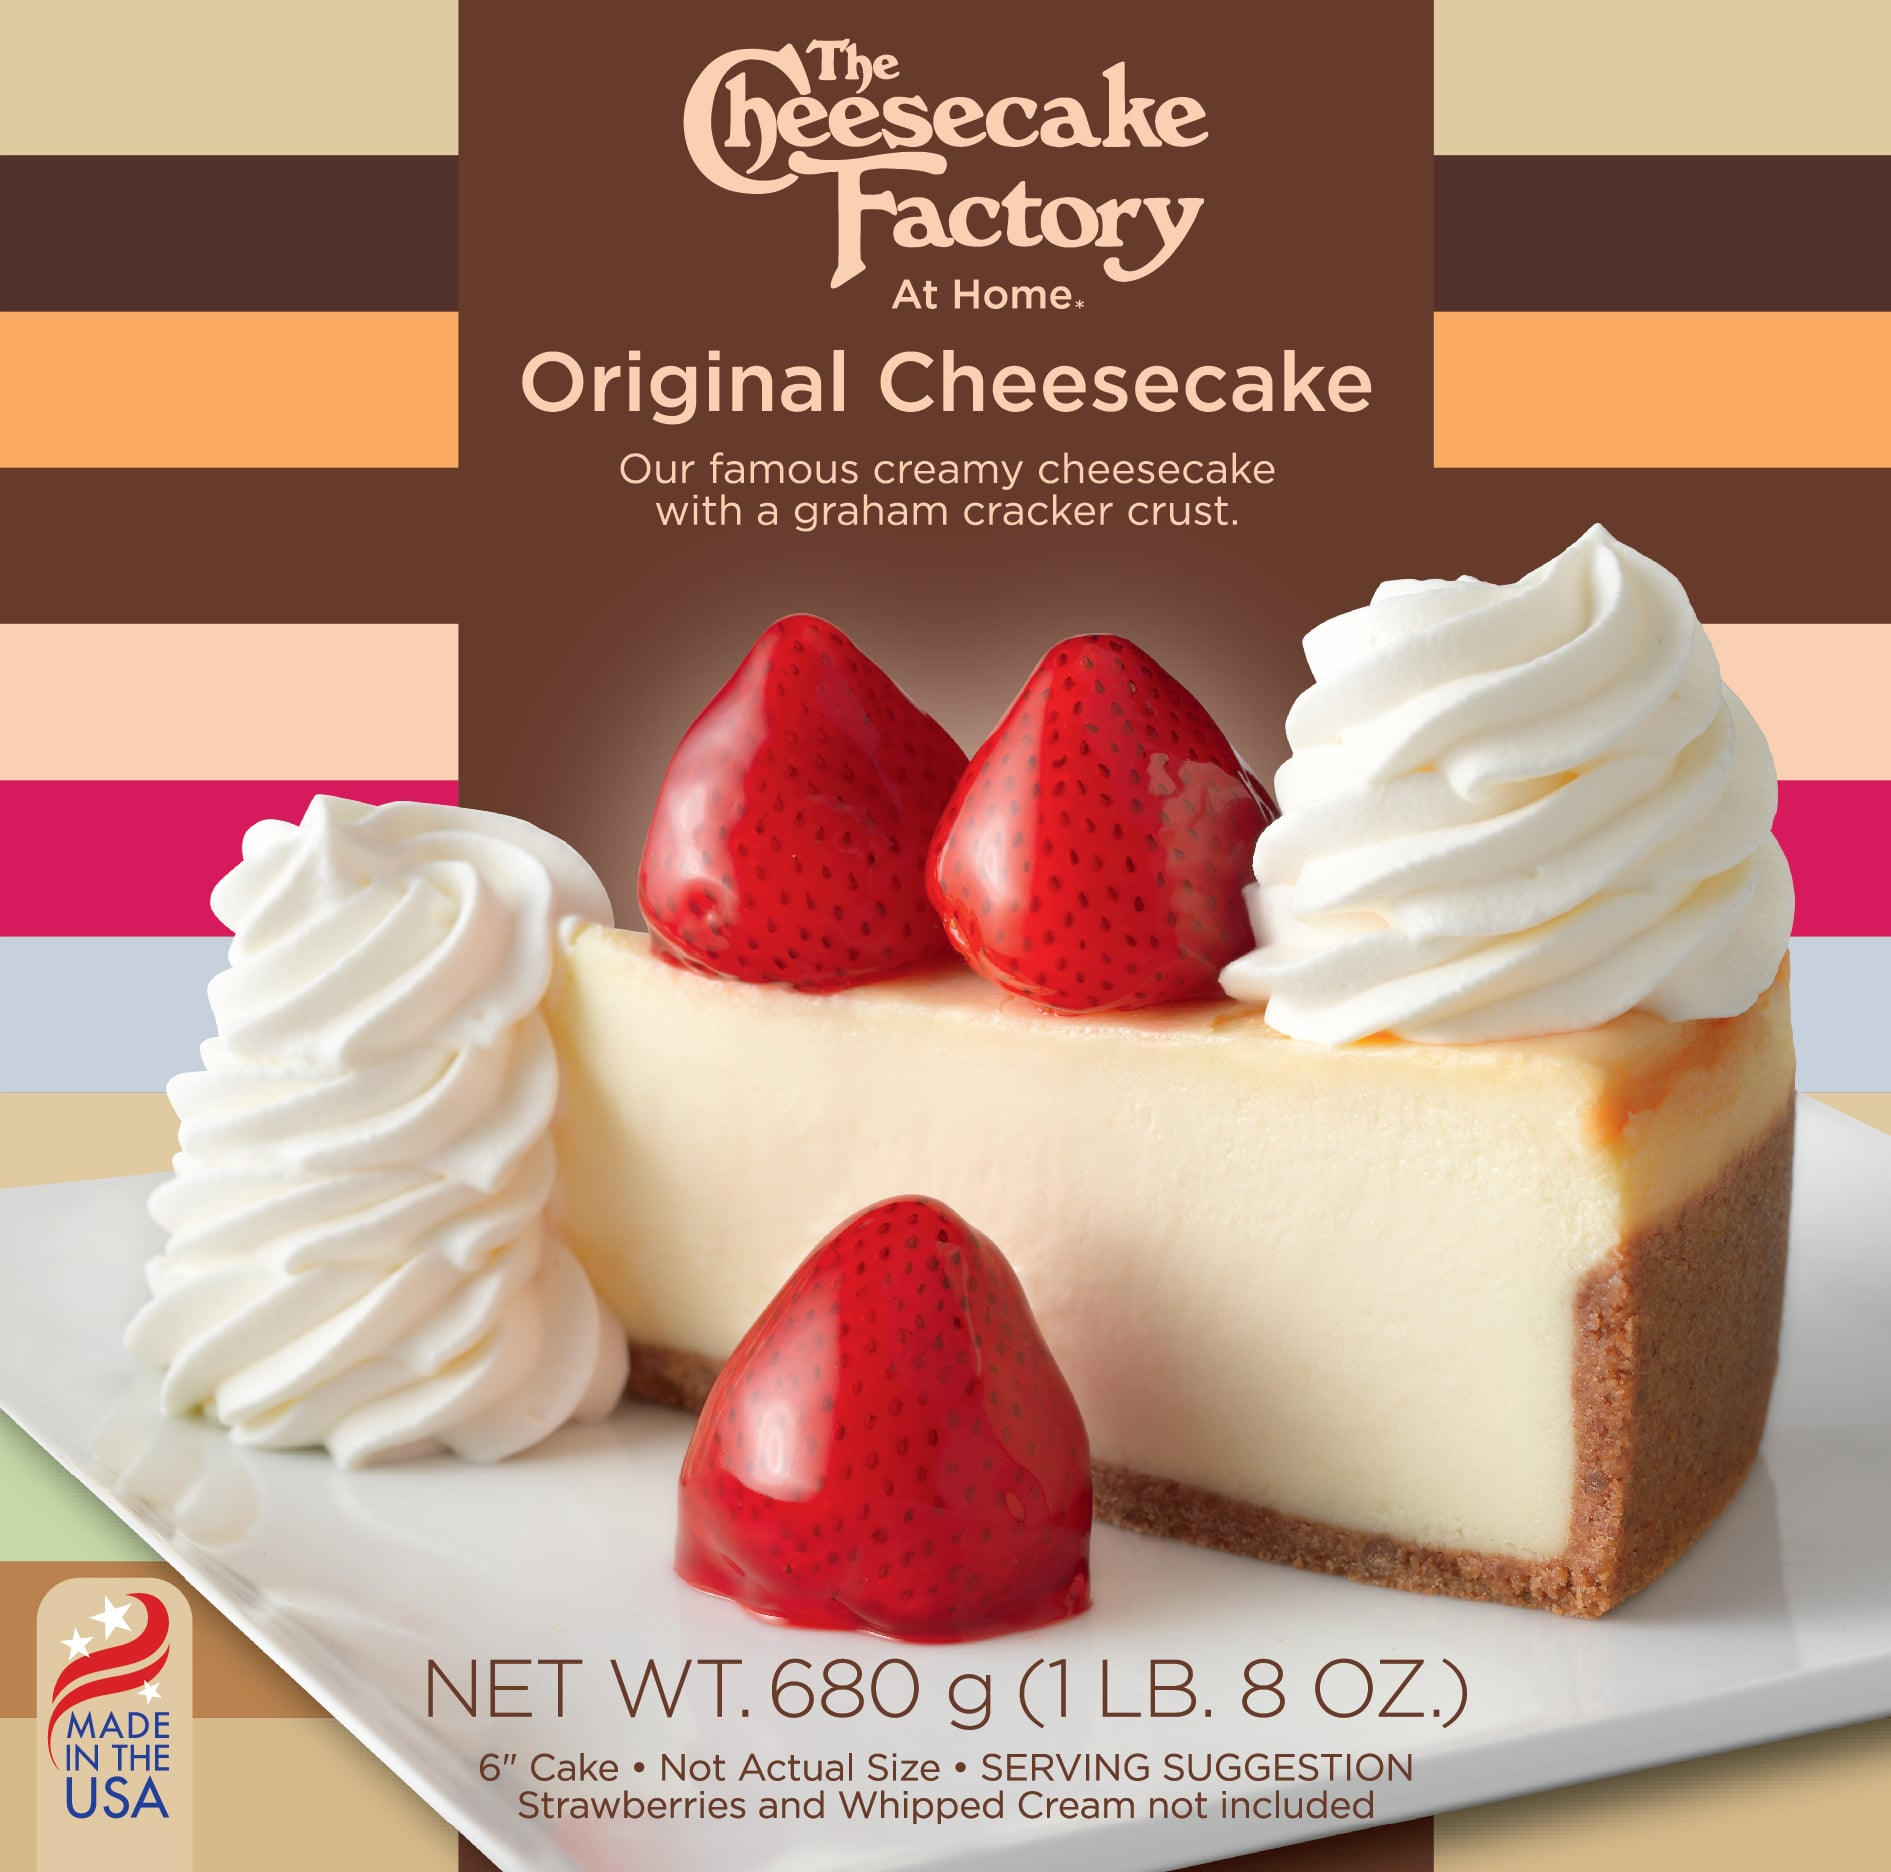 6 Inch Original Cheesecake from The Cheesecake Factory At Home range for UK & Europe Retailers